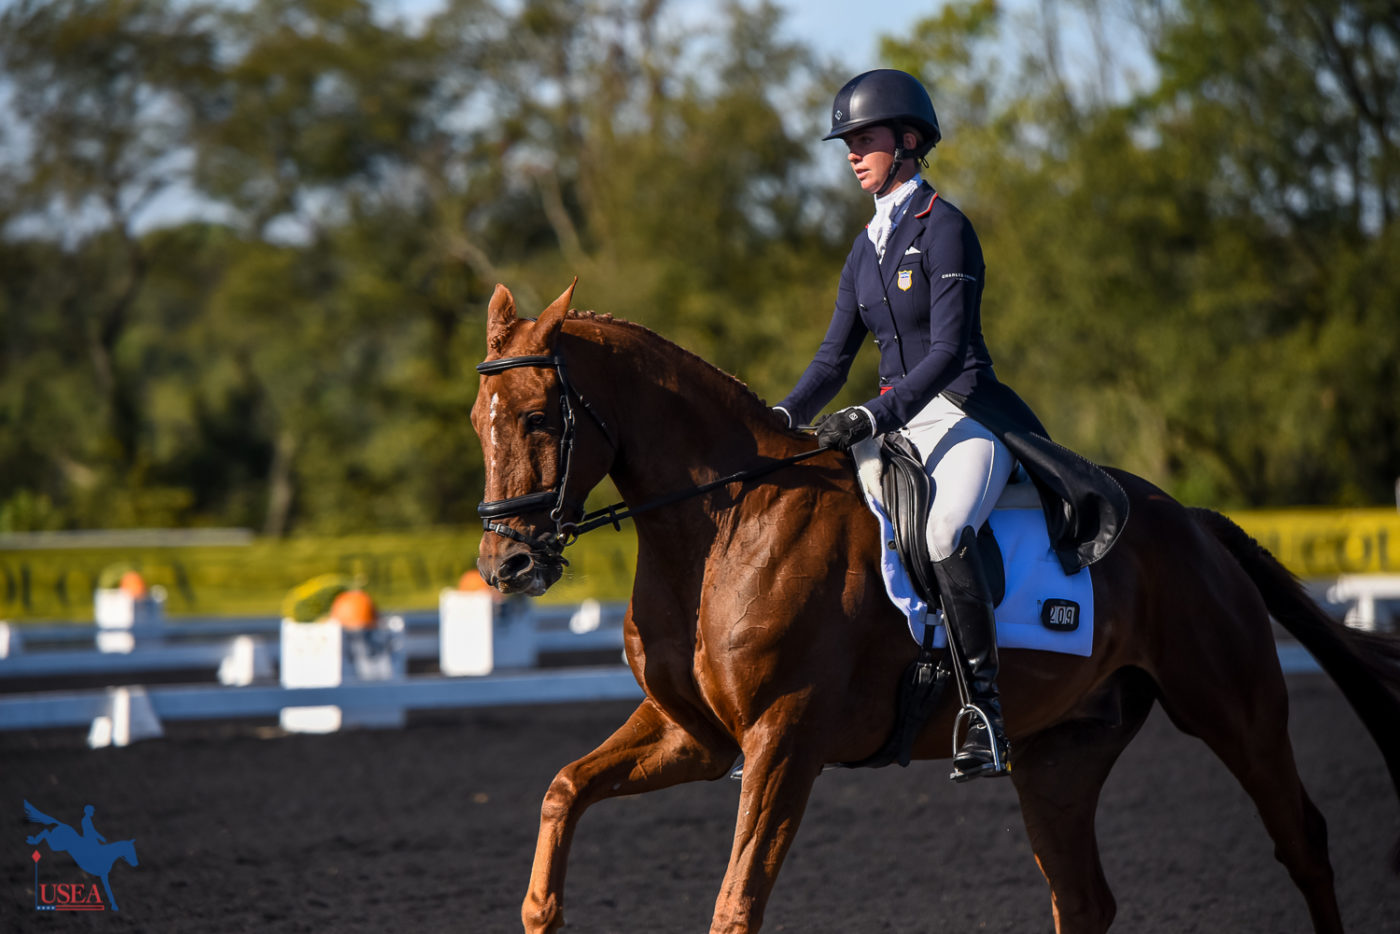 4th - Caroline Martin and Danger Mouse - 30.1